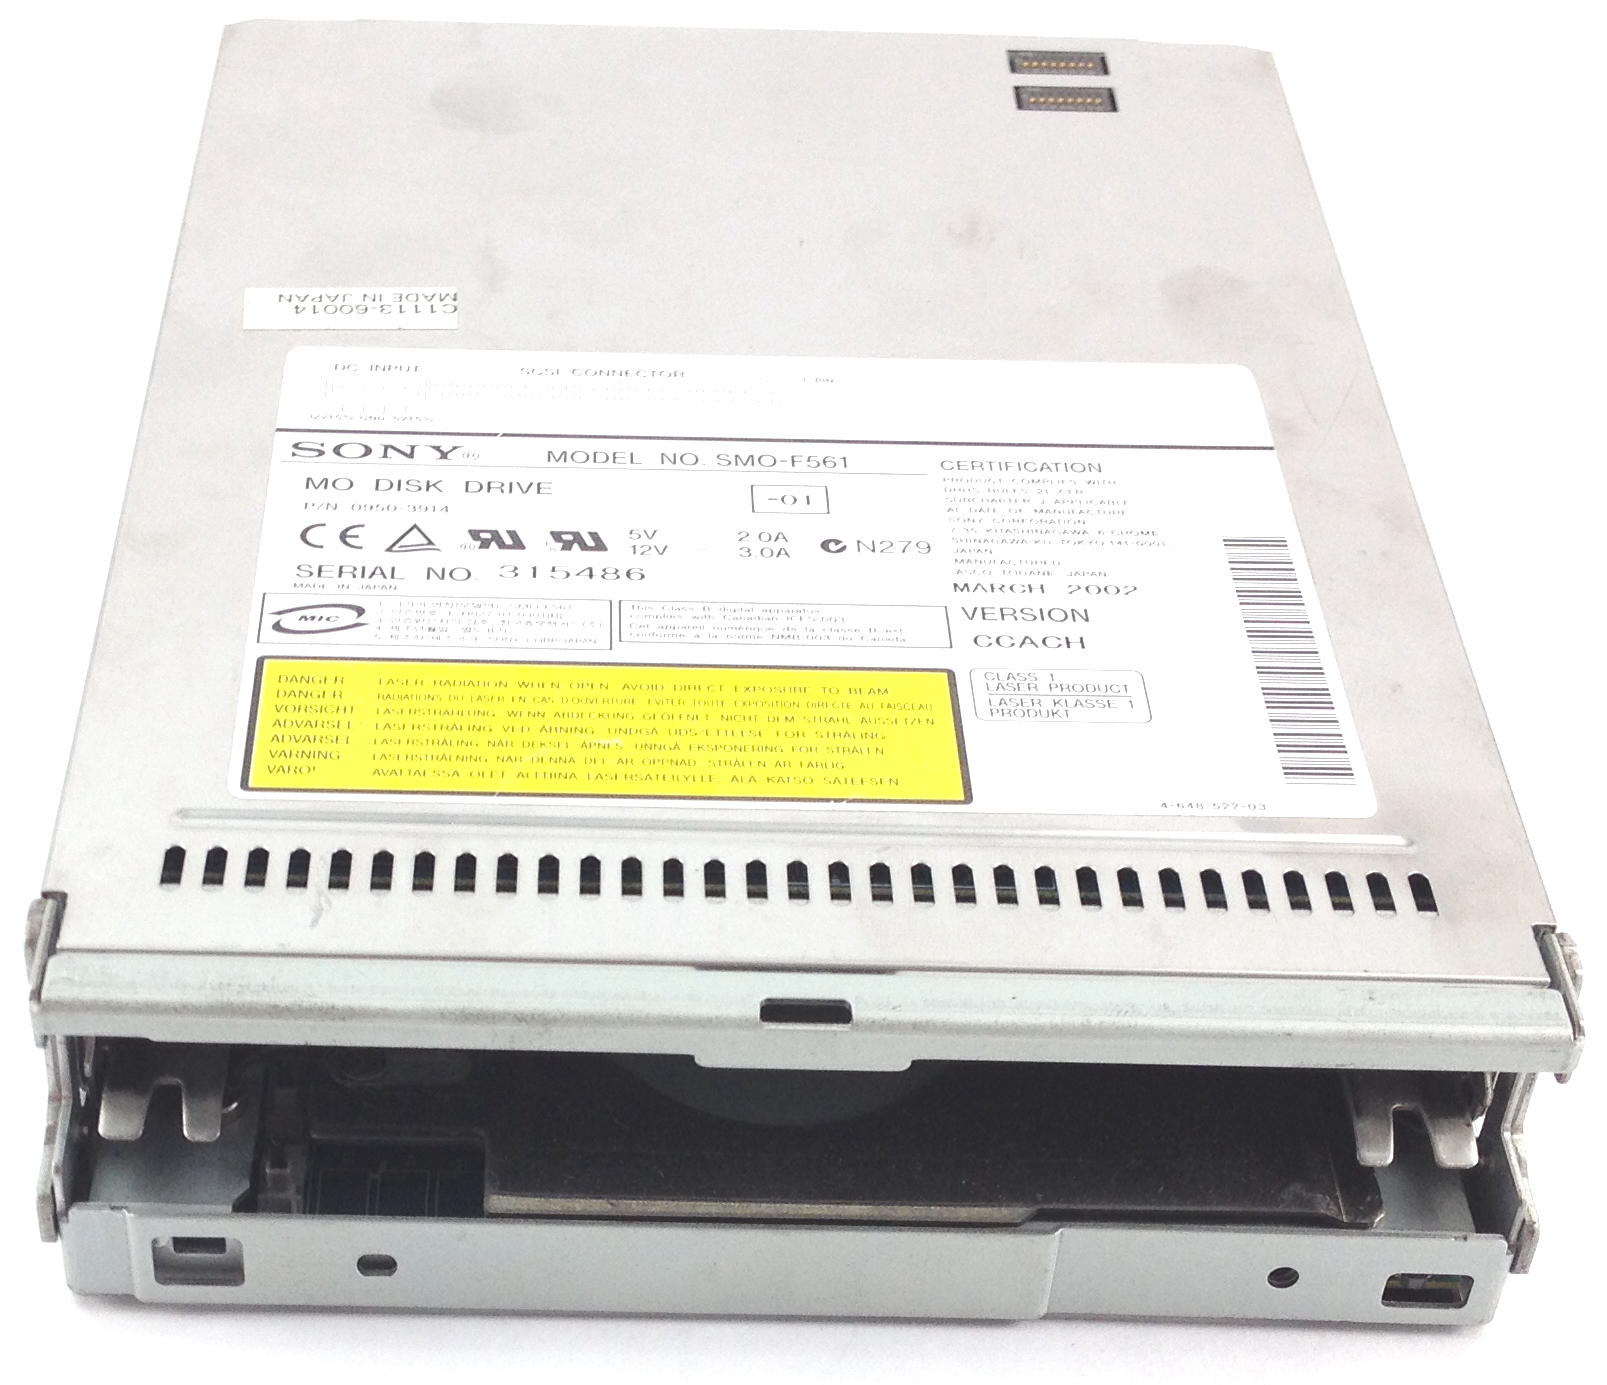 HP 9.1GB Magneto Optical Internal Loader Disk Drive (0950-3914)